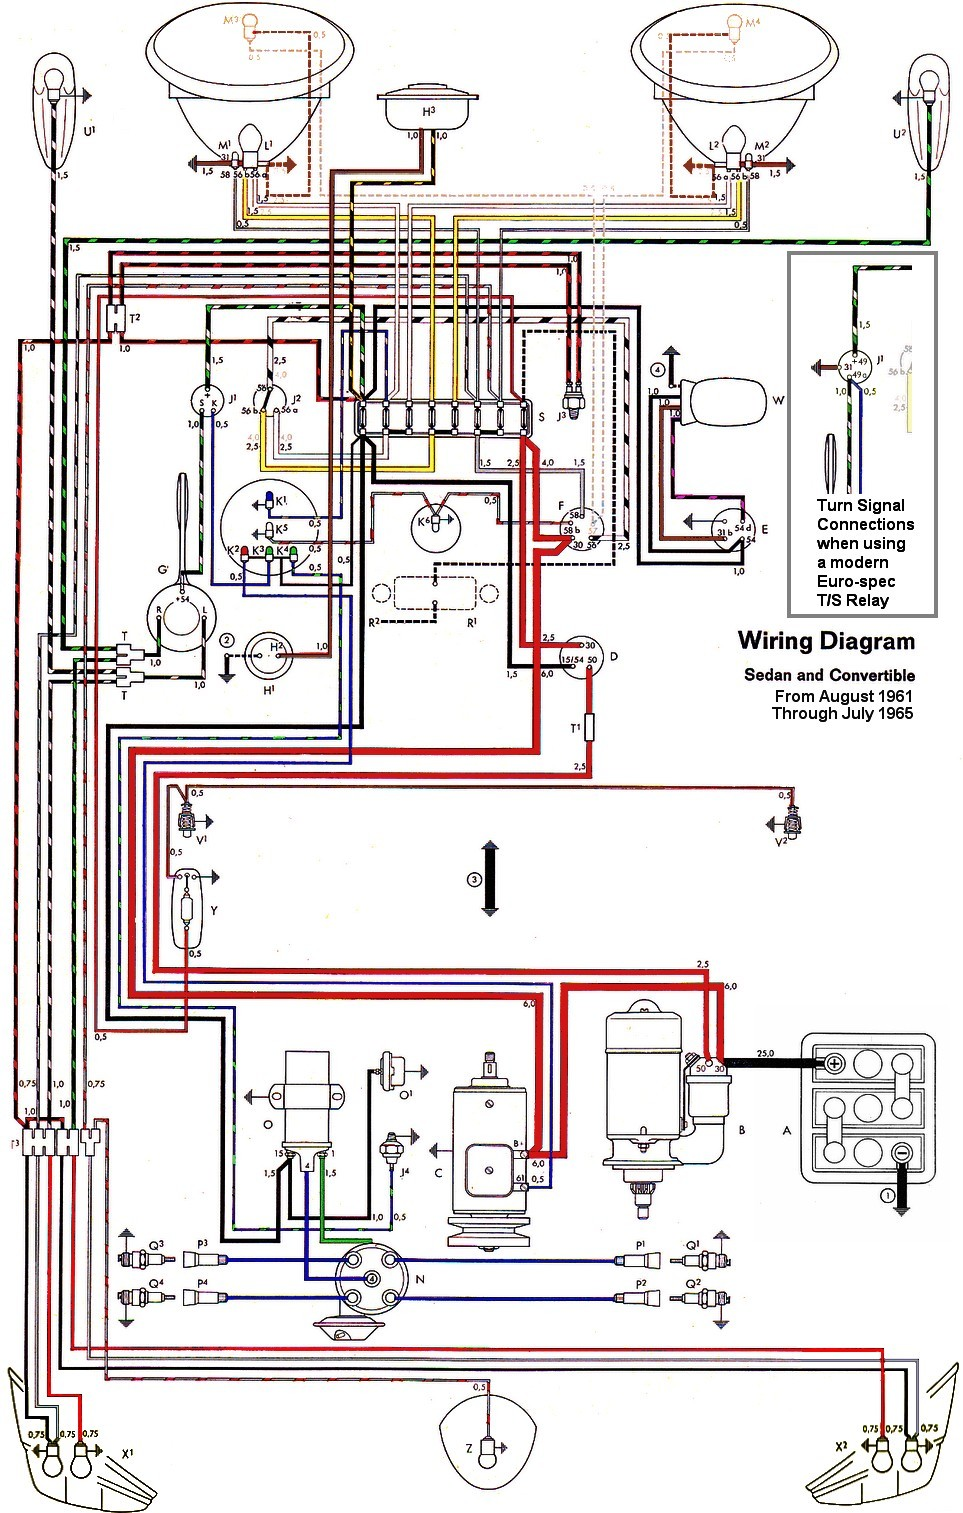 hight resolution of vw wiring diagrams electrical wiring diagrams 73 vw beetle wiring diagram volkswagen wiring diagram